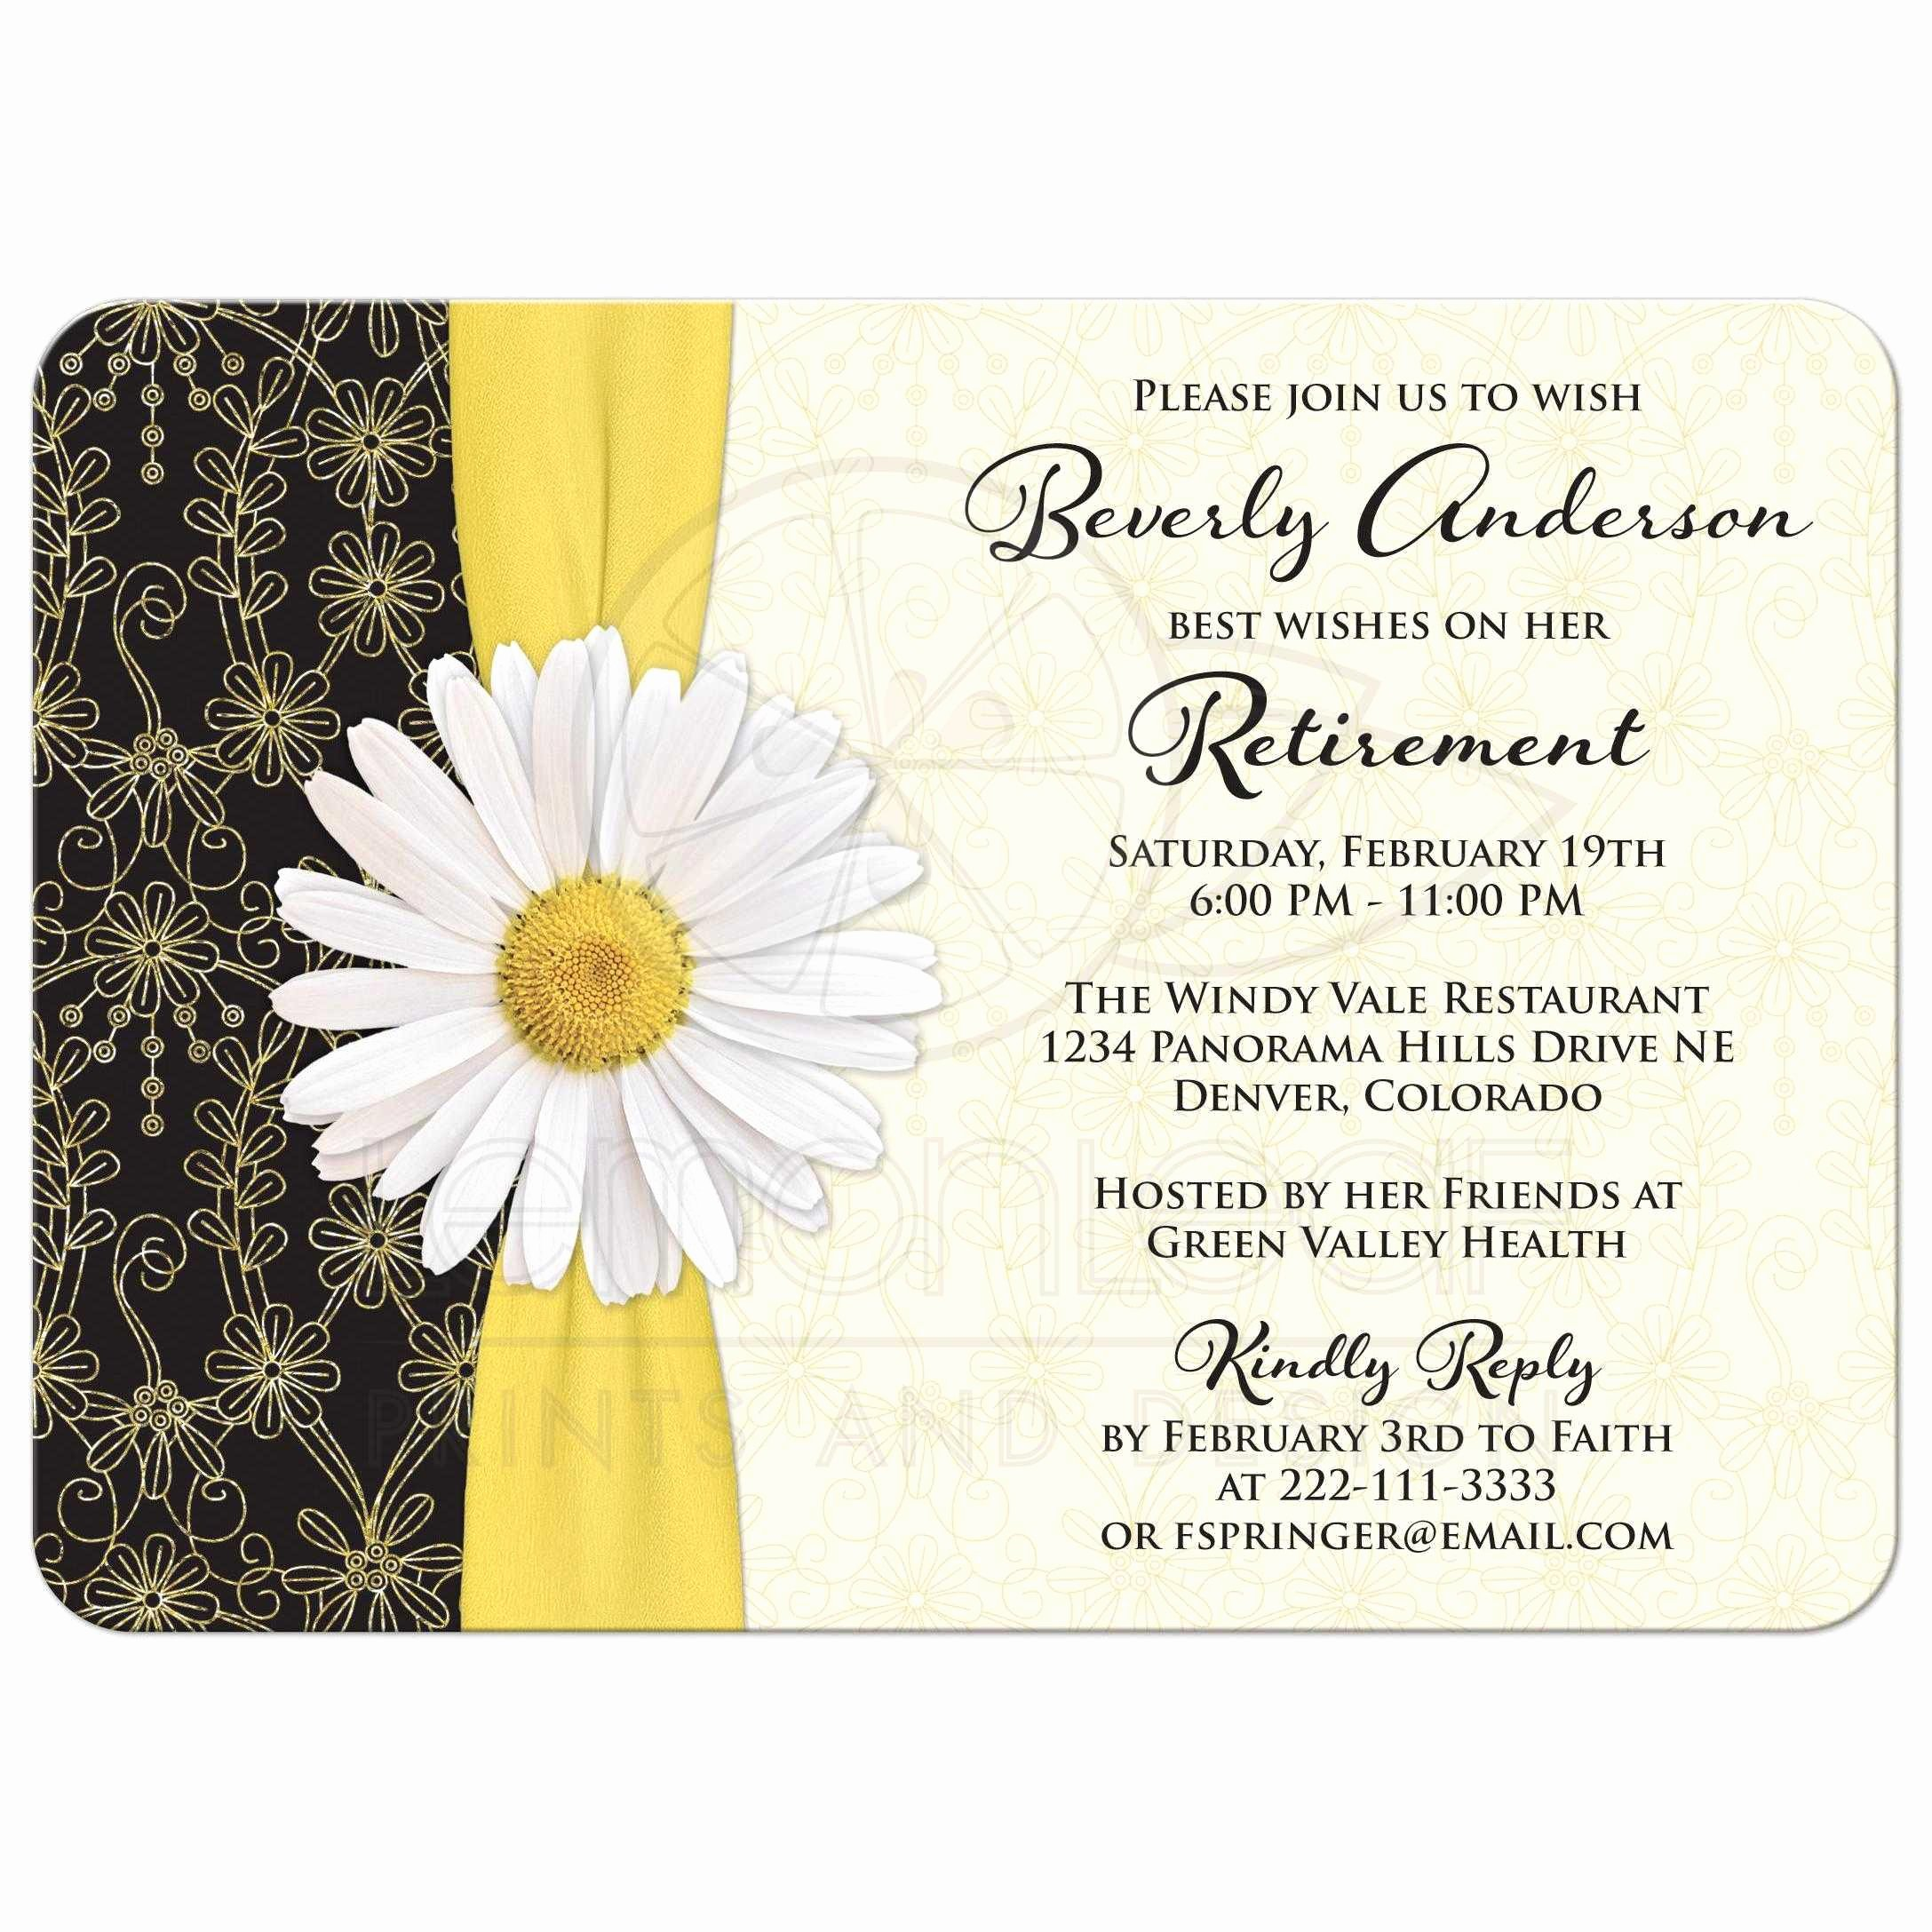 Retirement Party Invite Template Beautiful Retirement Party Invitation Wording